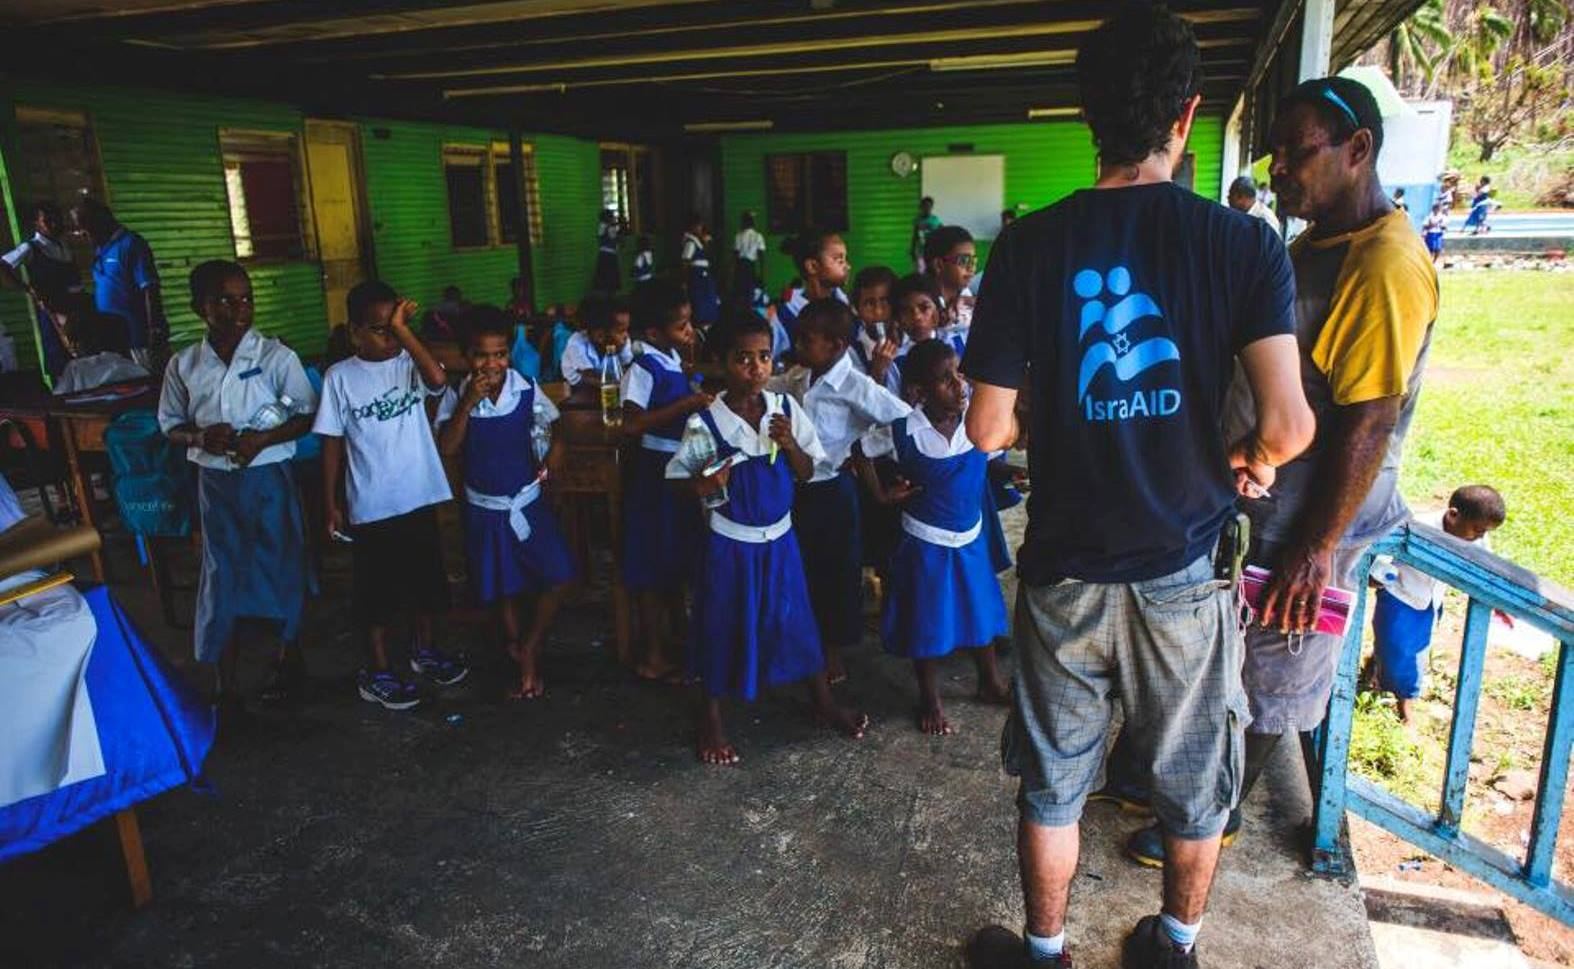 An IsraAID volunteer working with schoolchildren in Fiji. Photo via Facebook